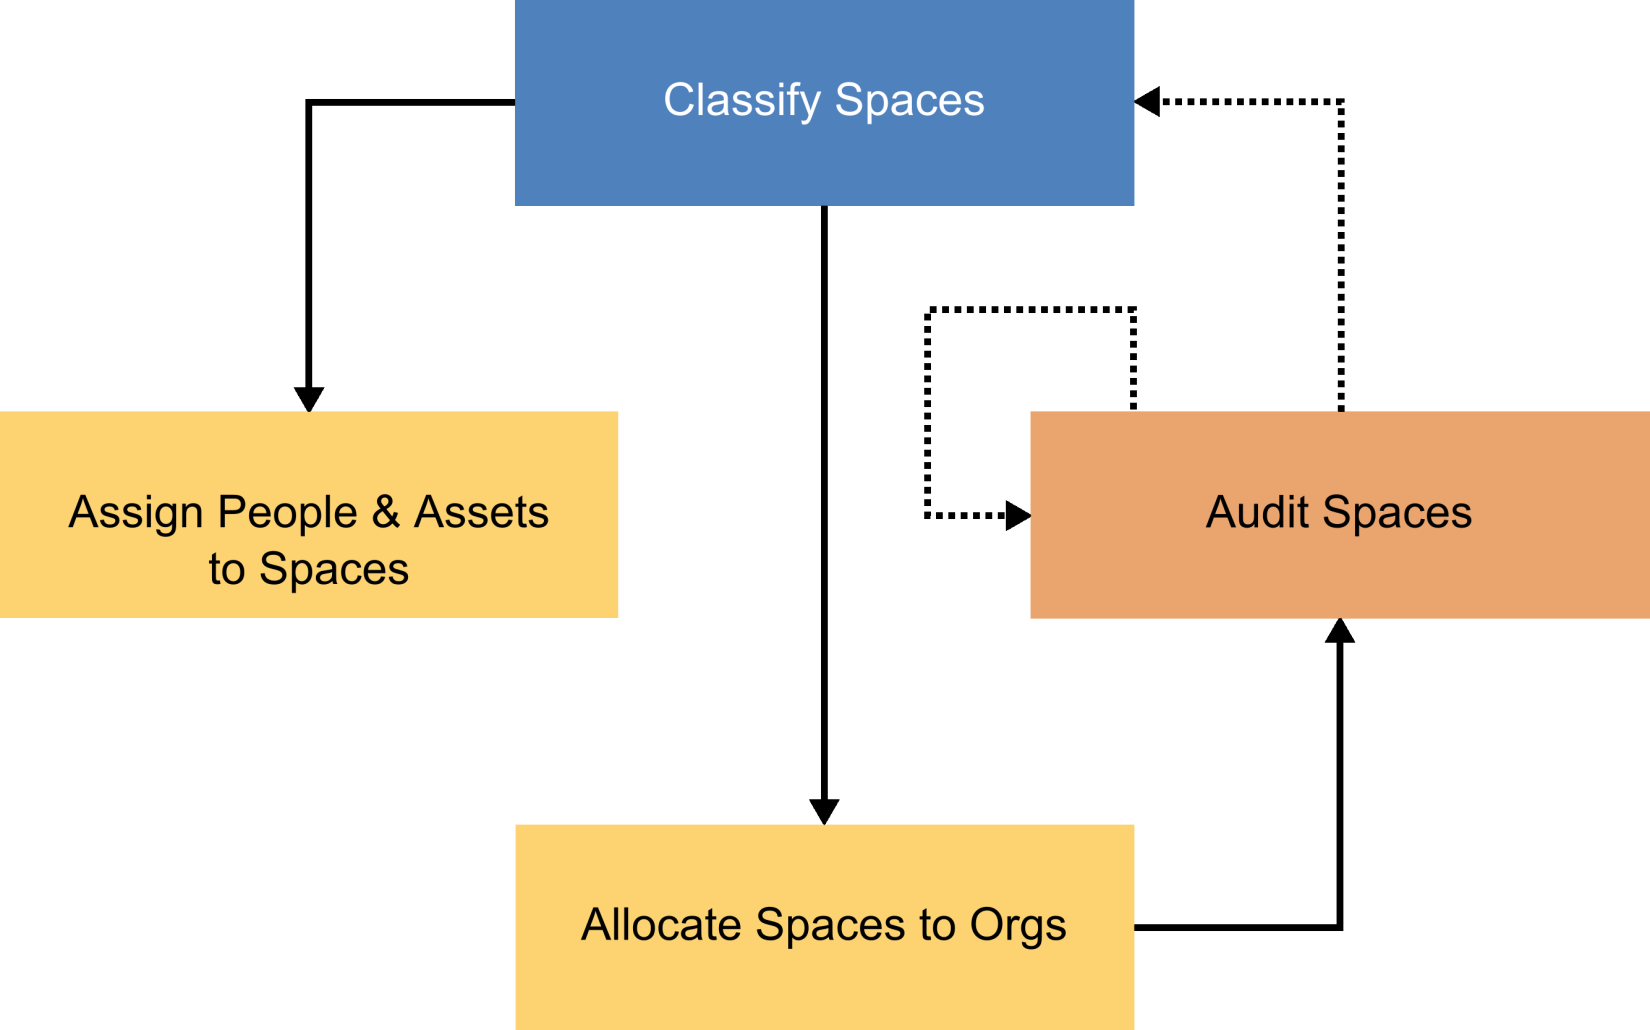 What Are The New Perceptive Apps Tririgafeedia Process Flow Diagram User Experience So In Terms Of Space Audit Spaces Box Loosely Represents Our Assessment App And Companion